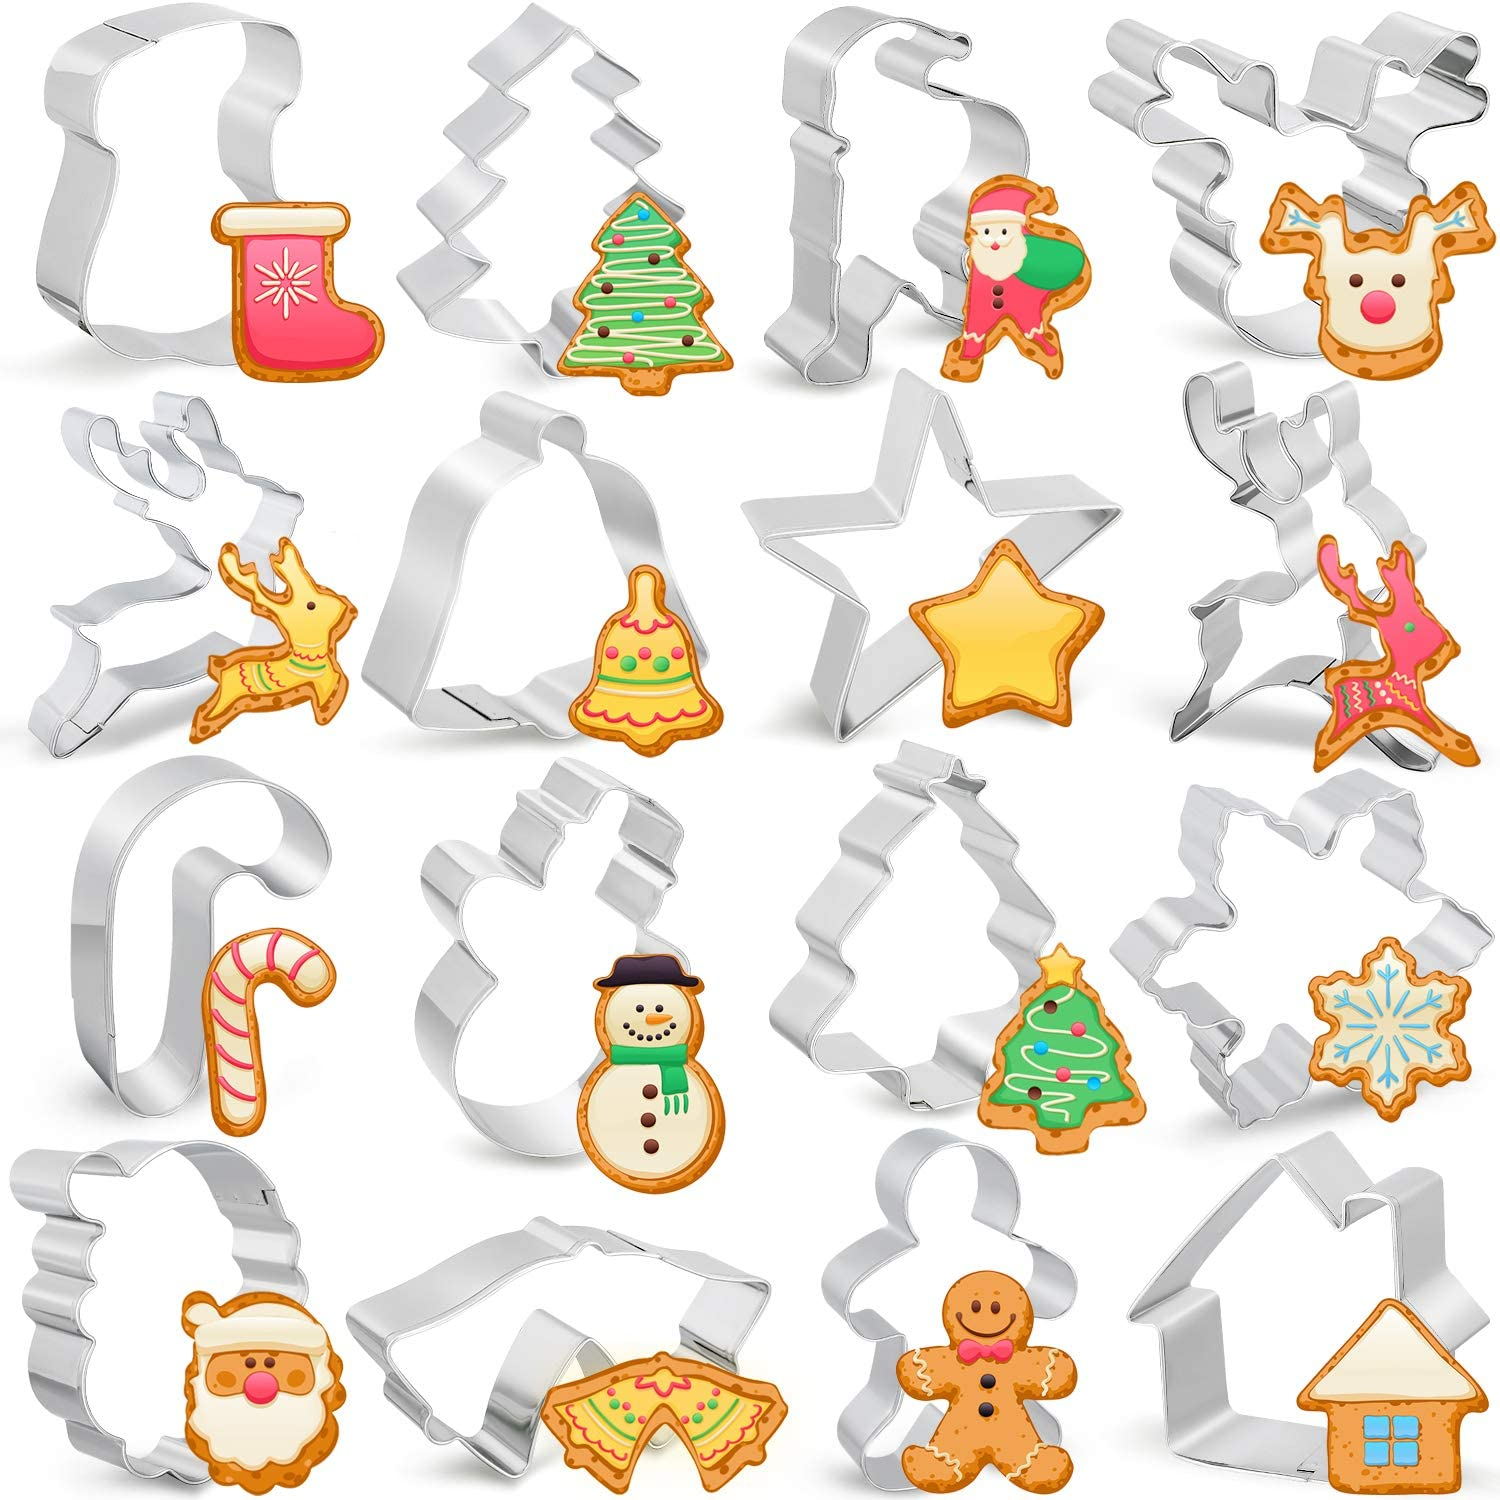 16 Pieces Christmas Cookie Cutters Creative Cookie Molds Stainless Steel Cookie Cutters for Christmas Party Home Kitchen Supplies